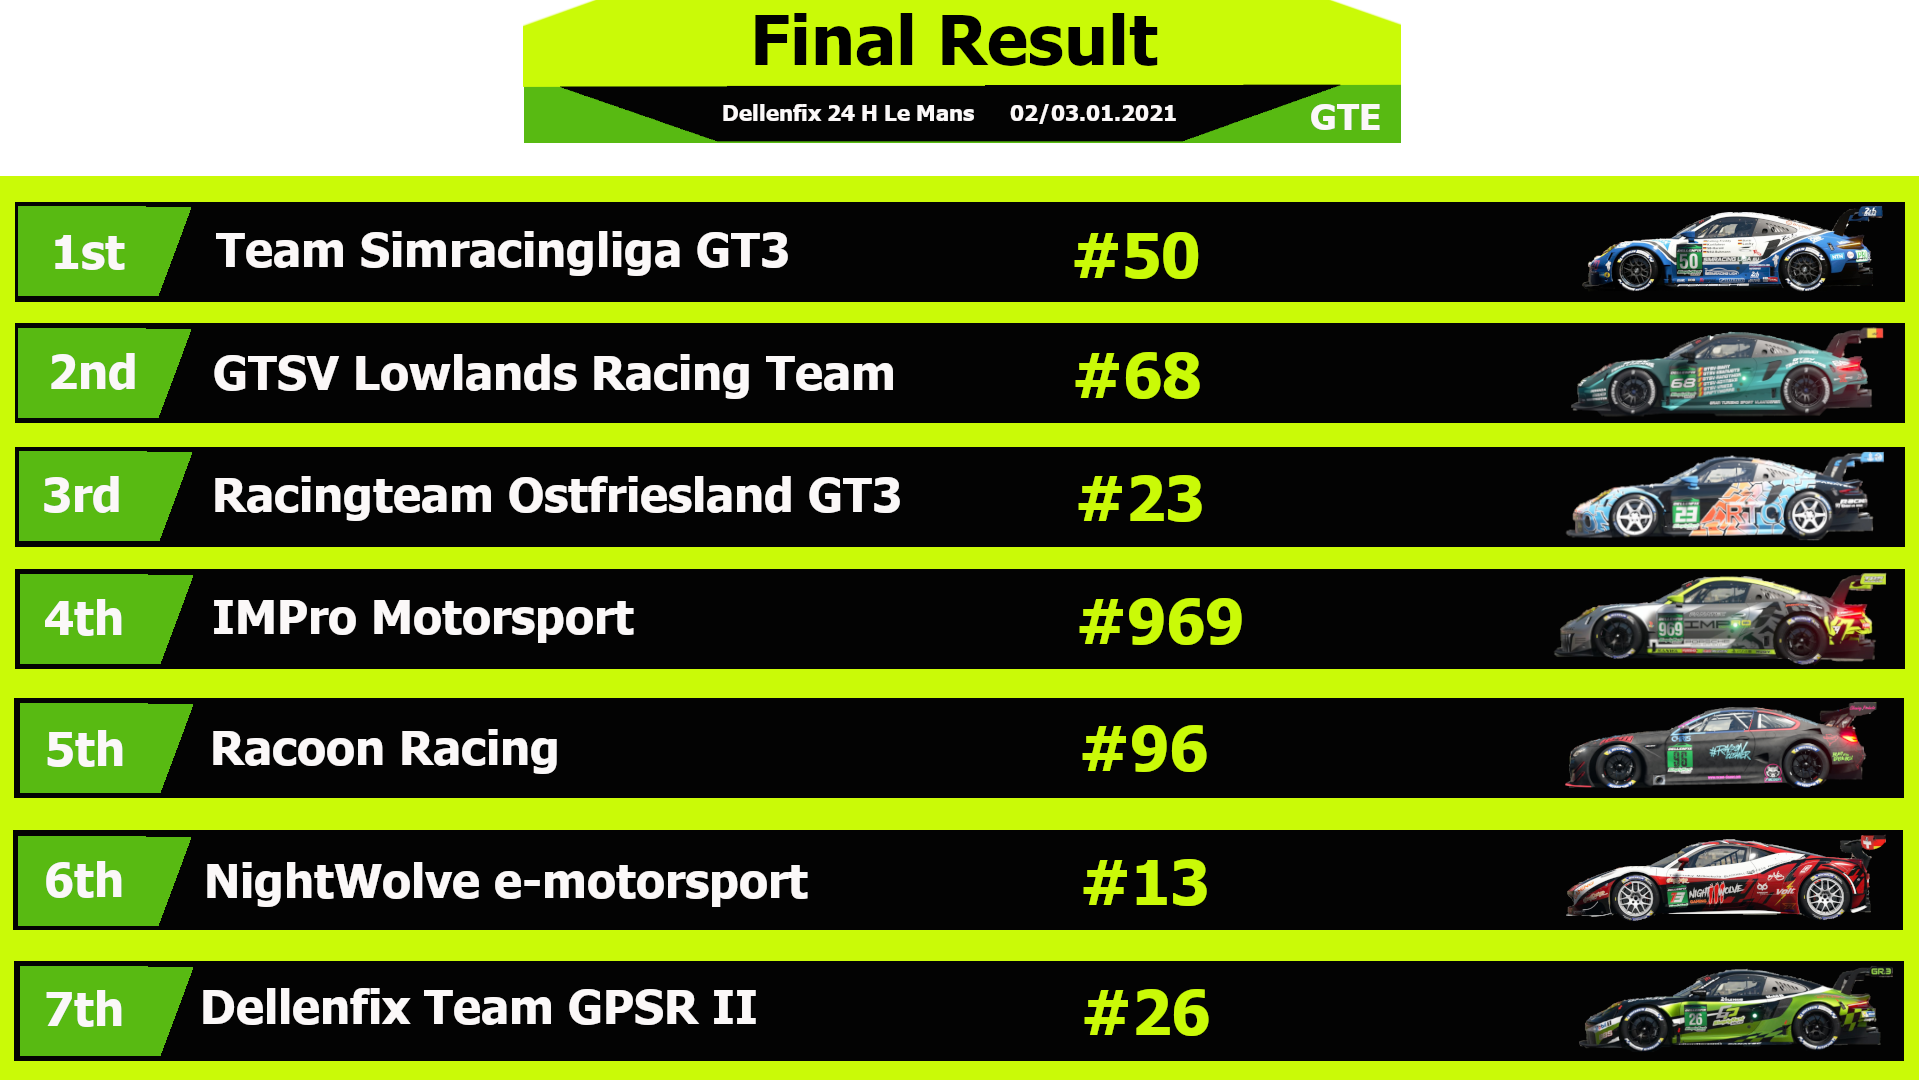 Final_resultsGTE